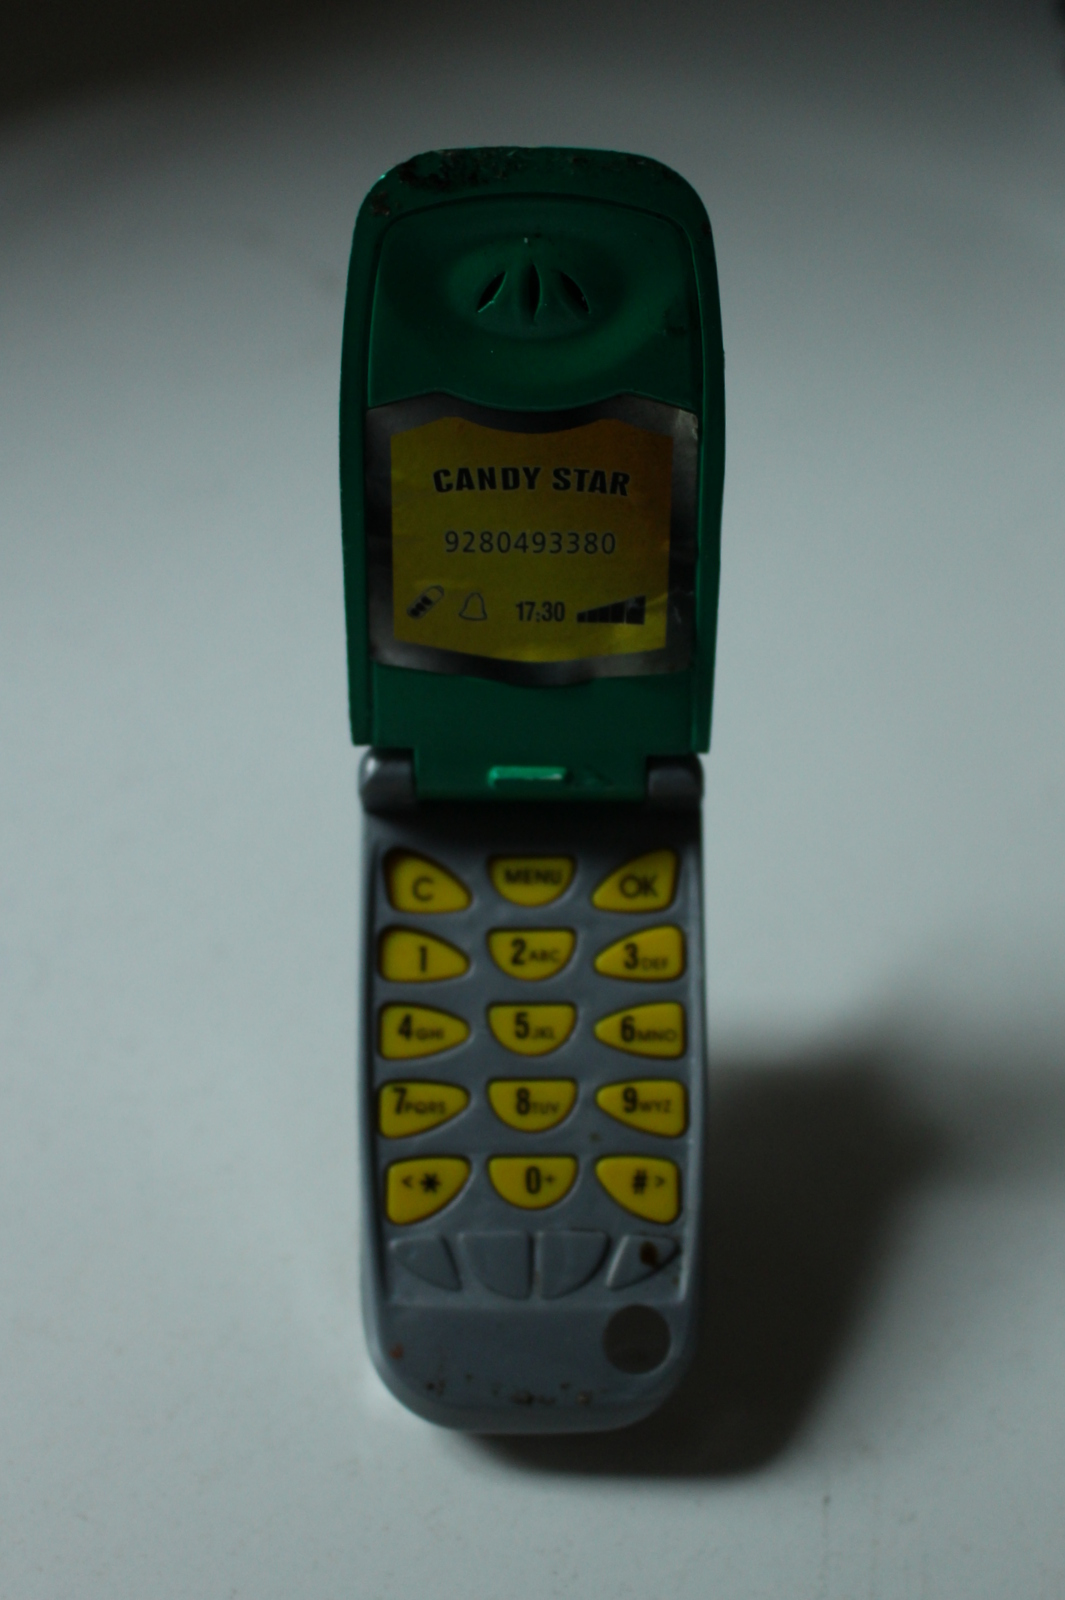 Candy Star - Neues Handy (2013)